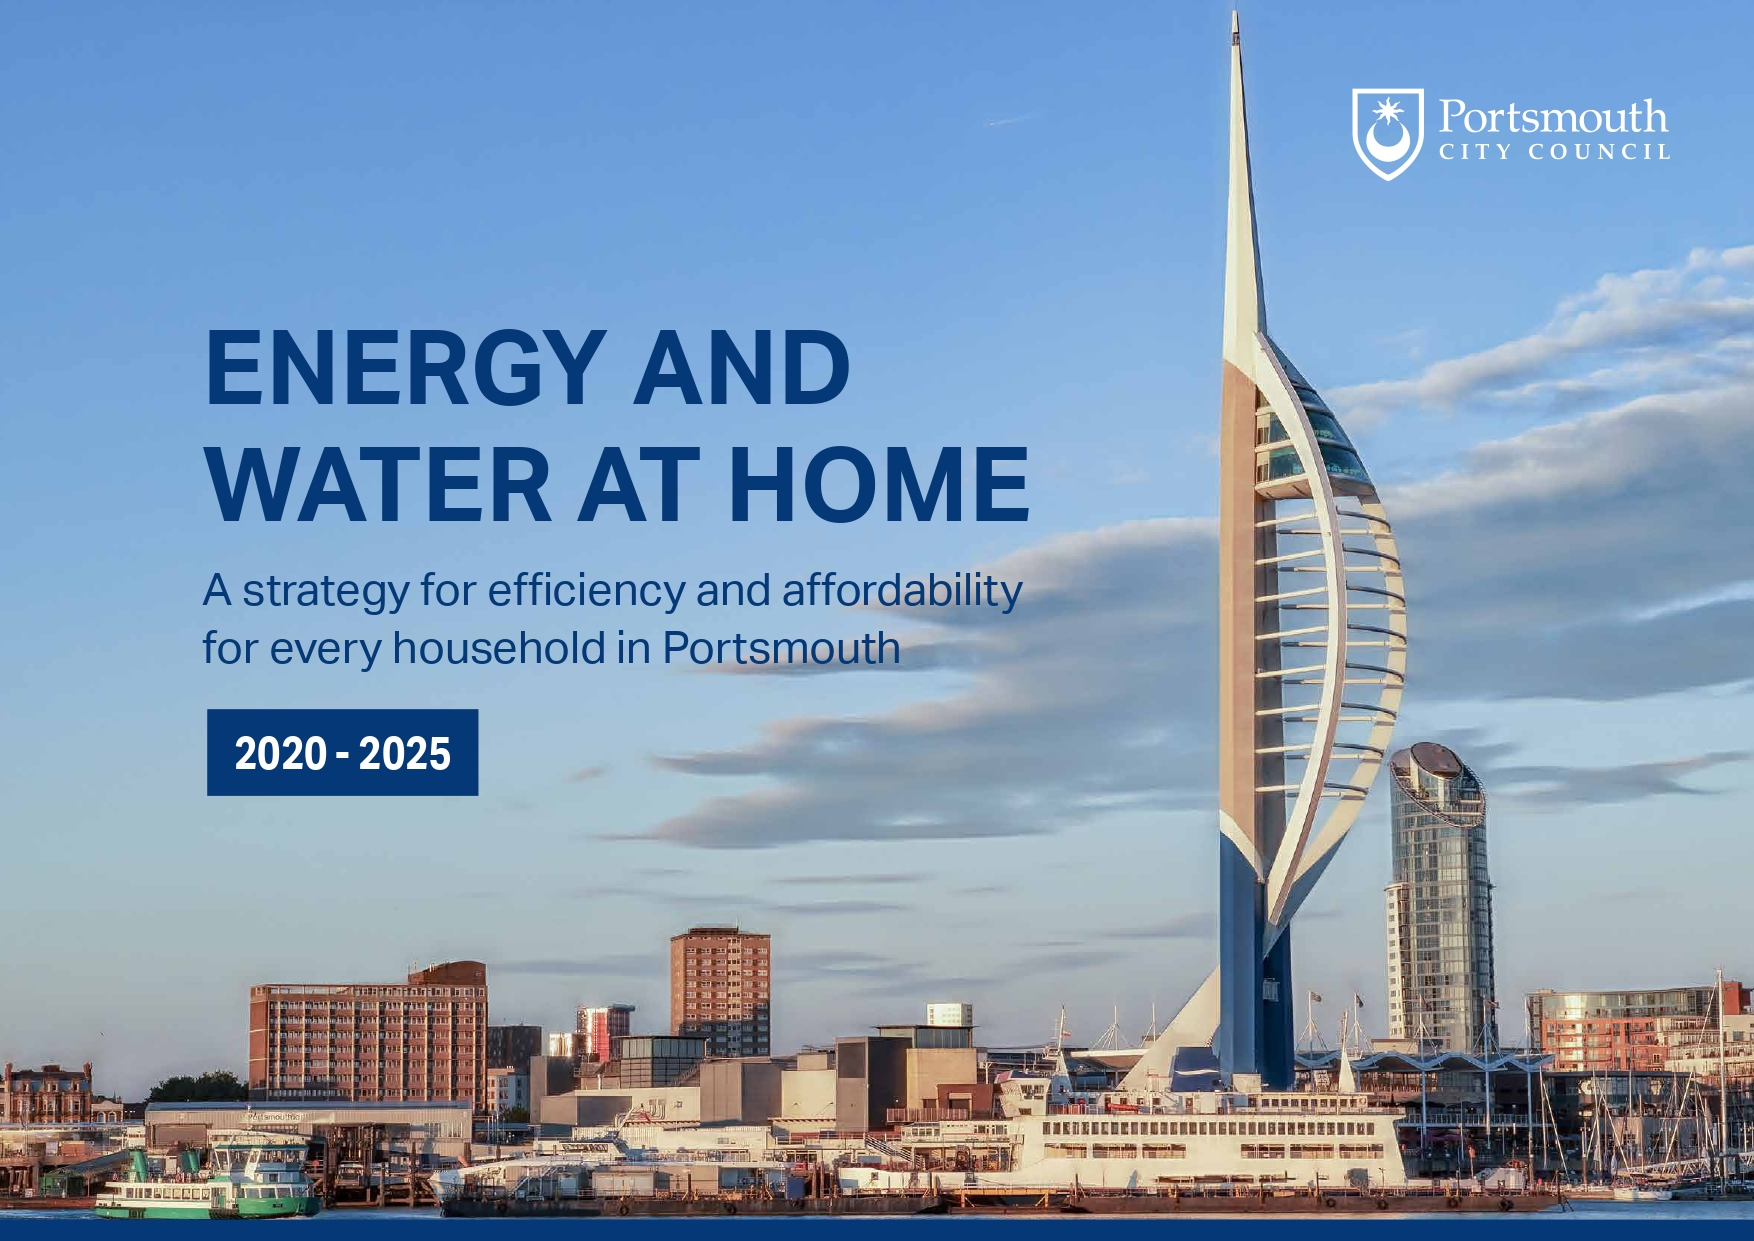 Energy and water strategy